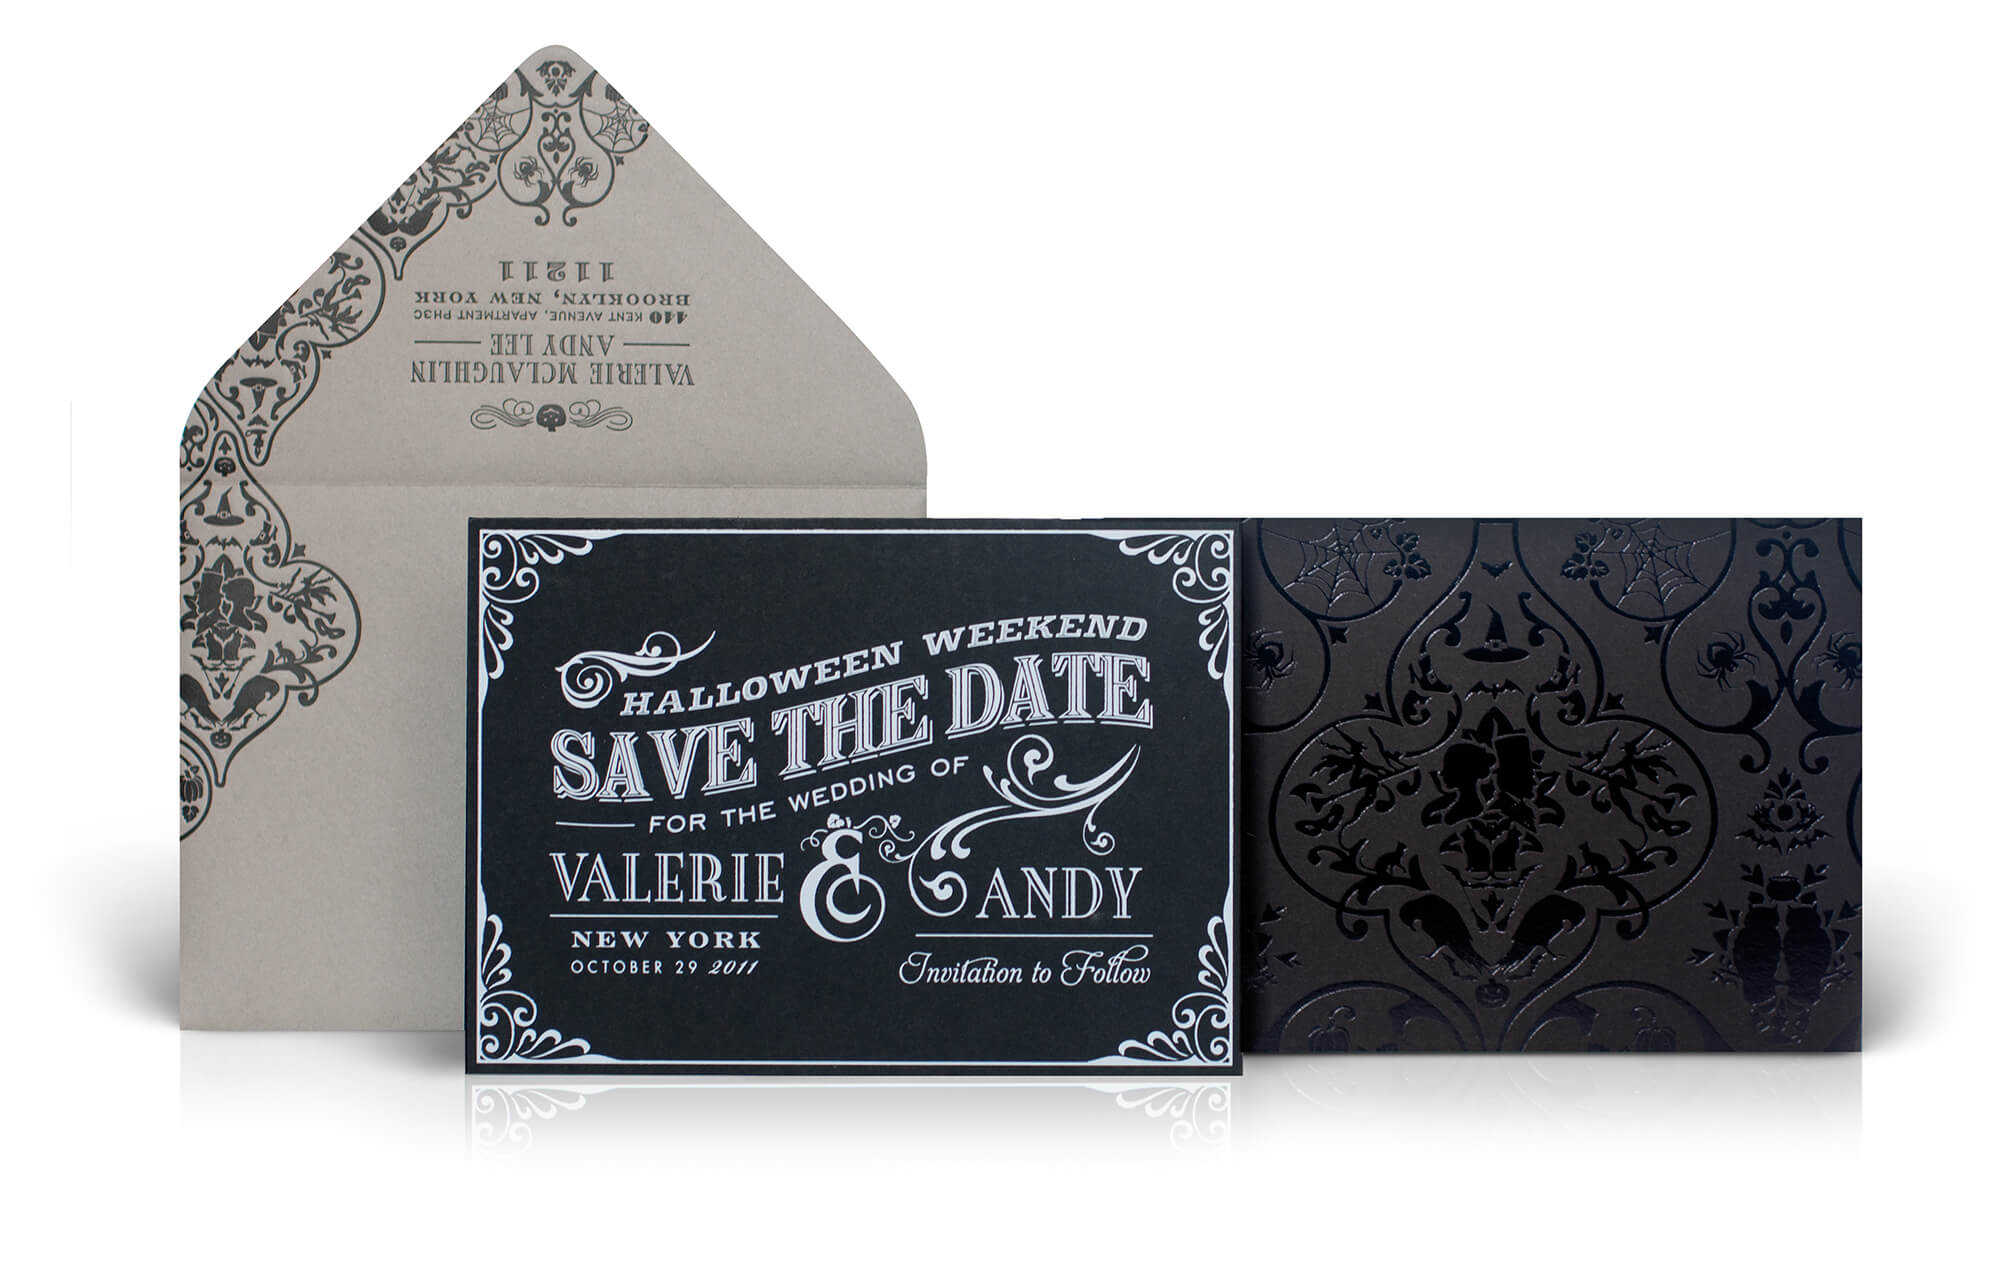 Halloween save the date and envelope